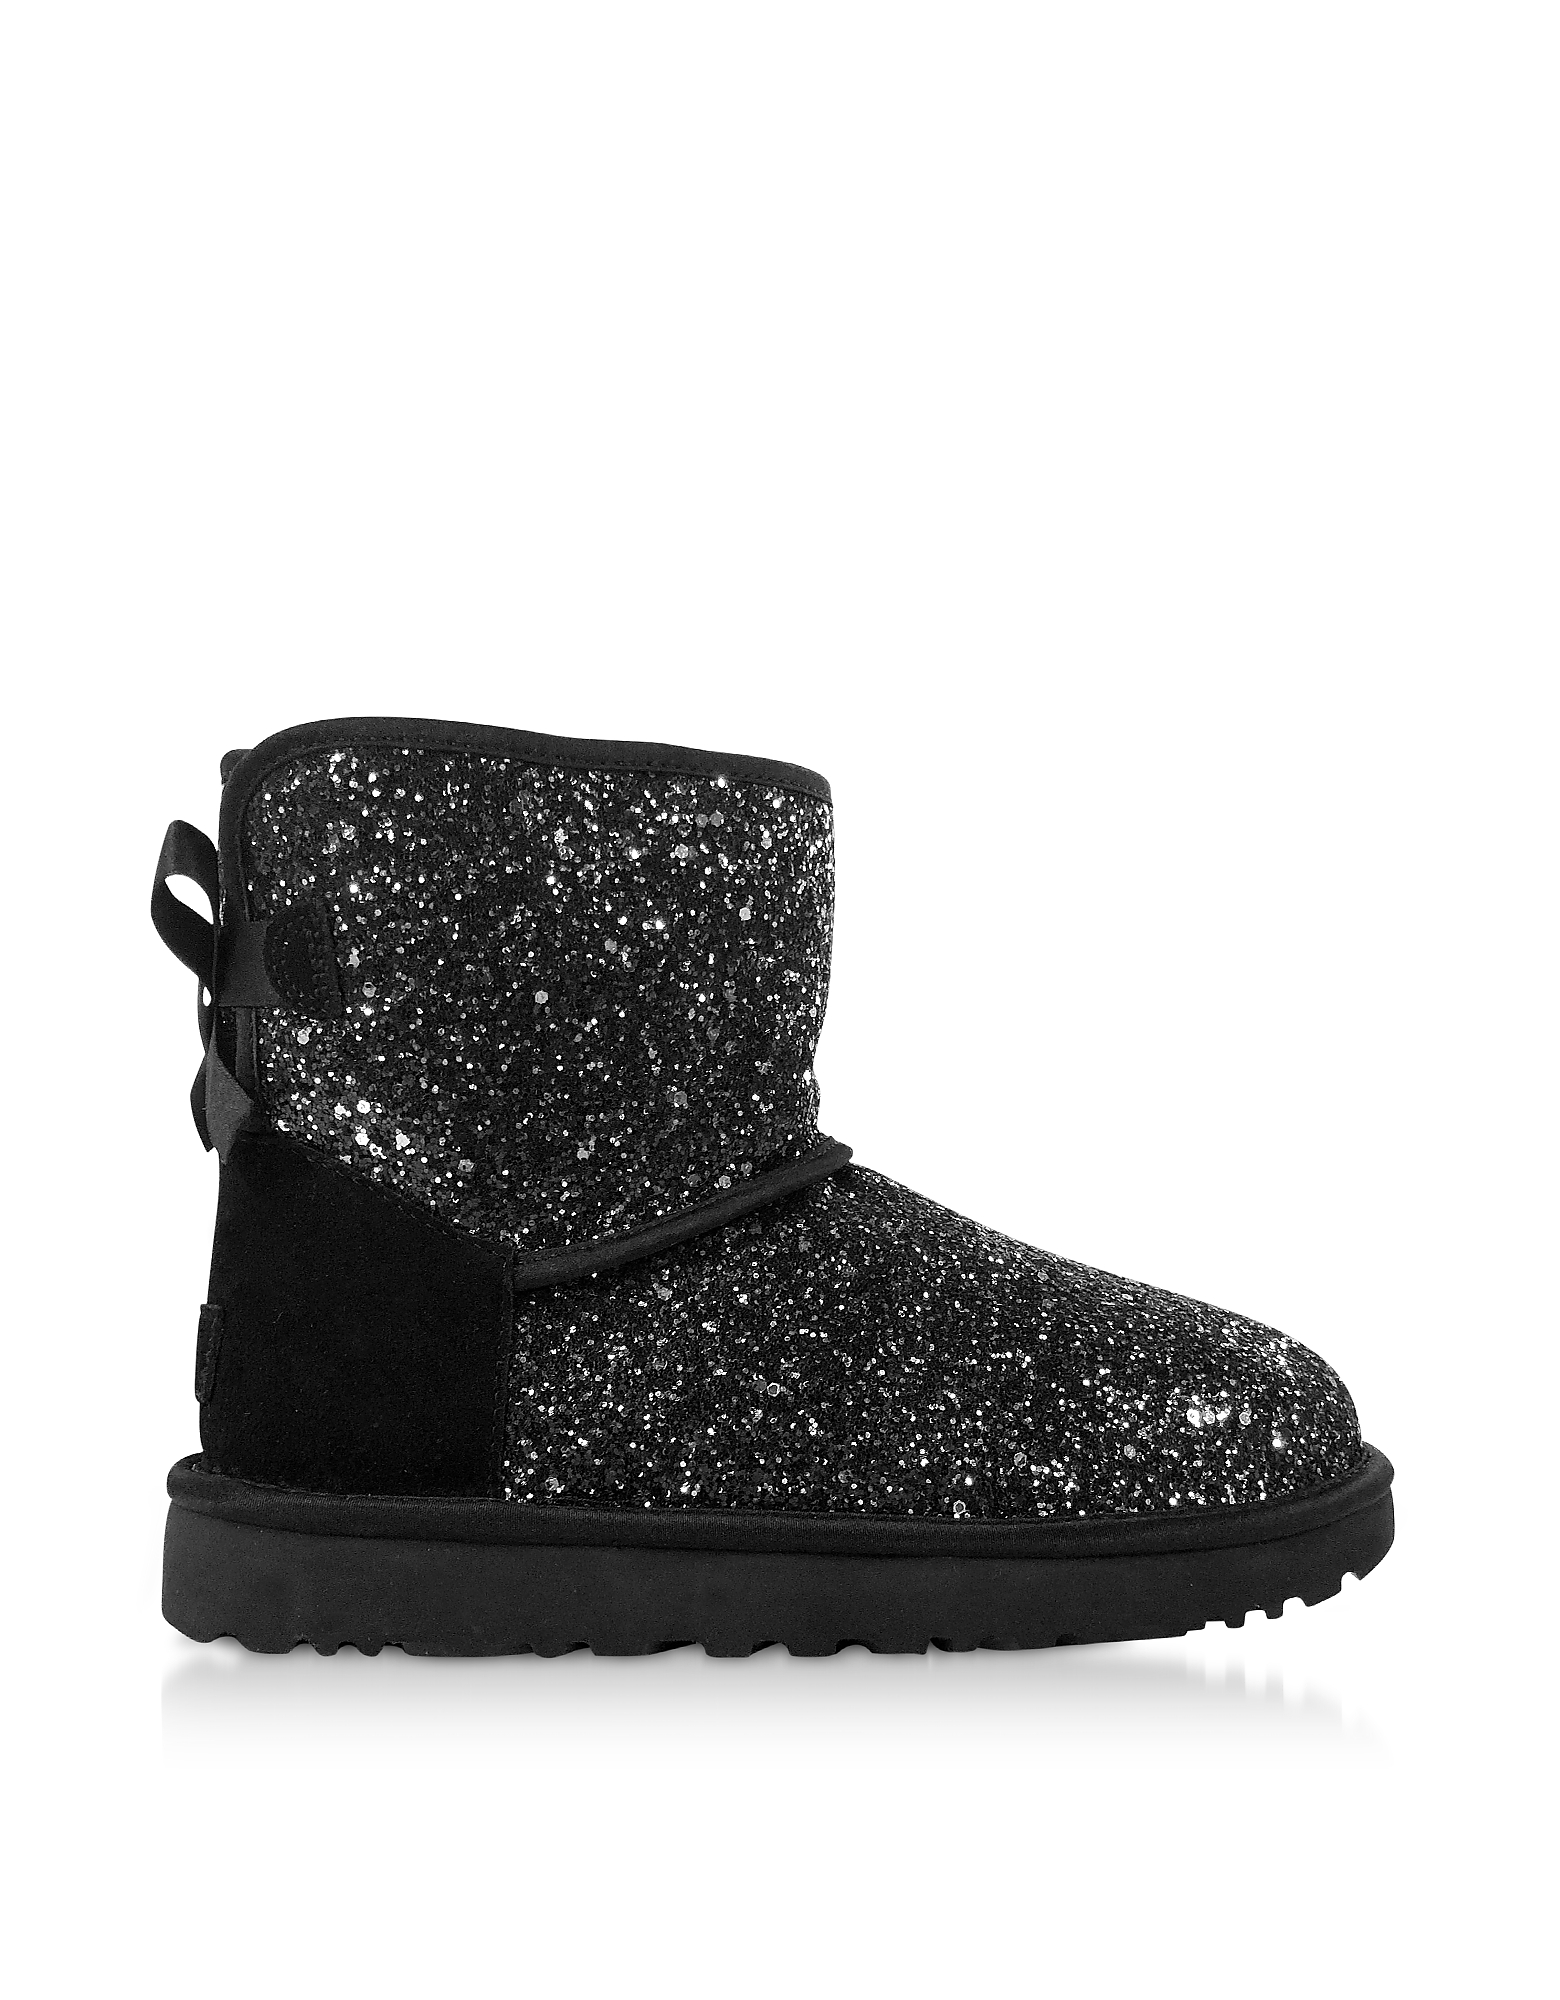 UGG Designer Shoes, Cosmos Black Classic Mini Bow Boots